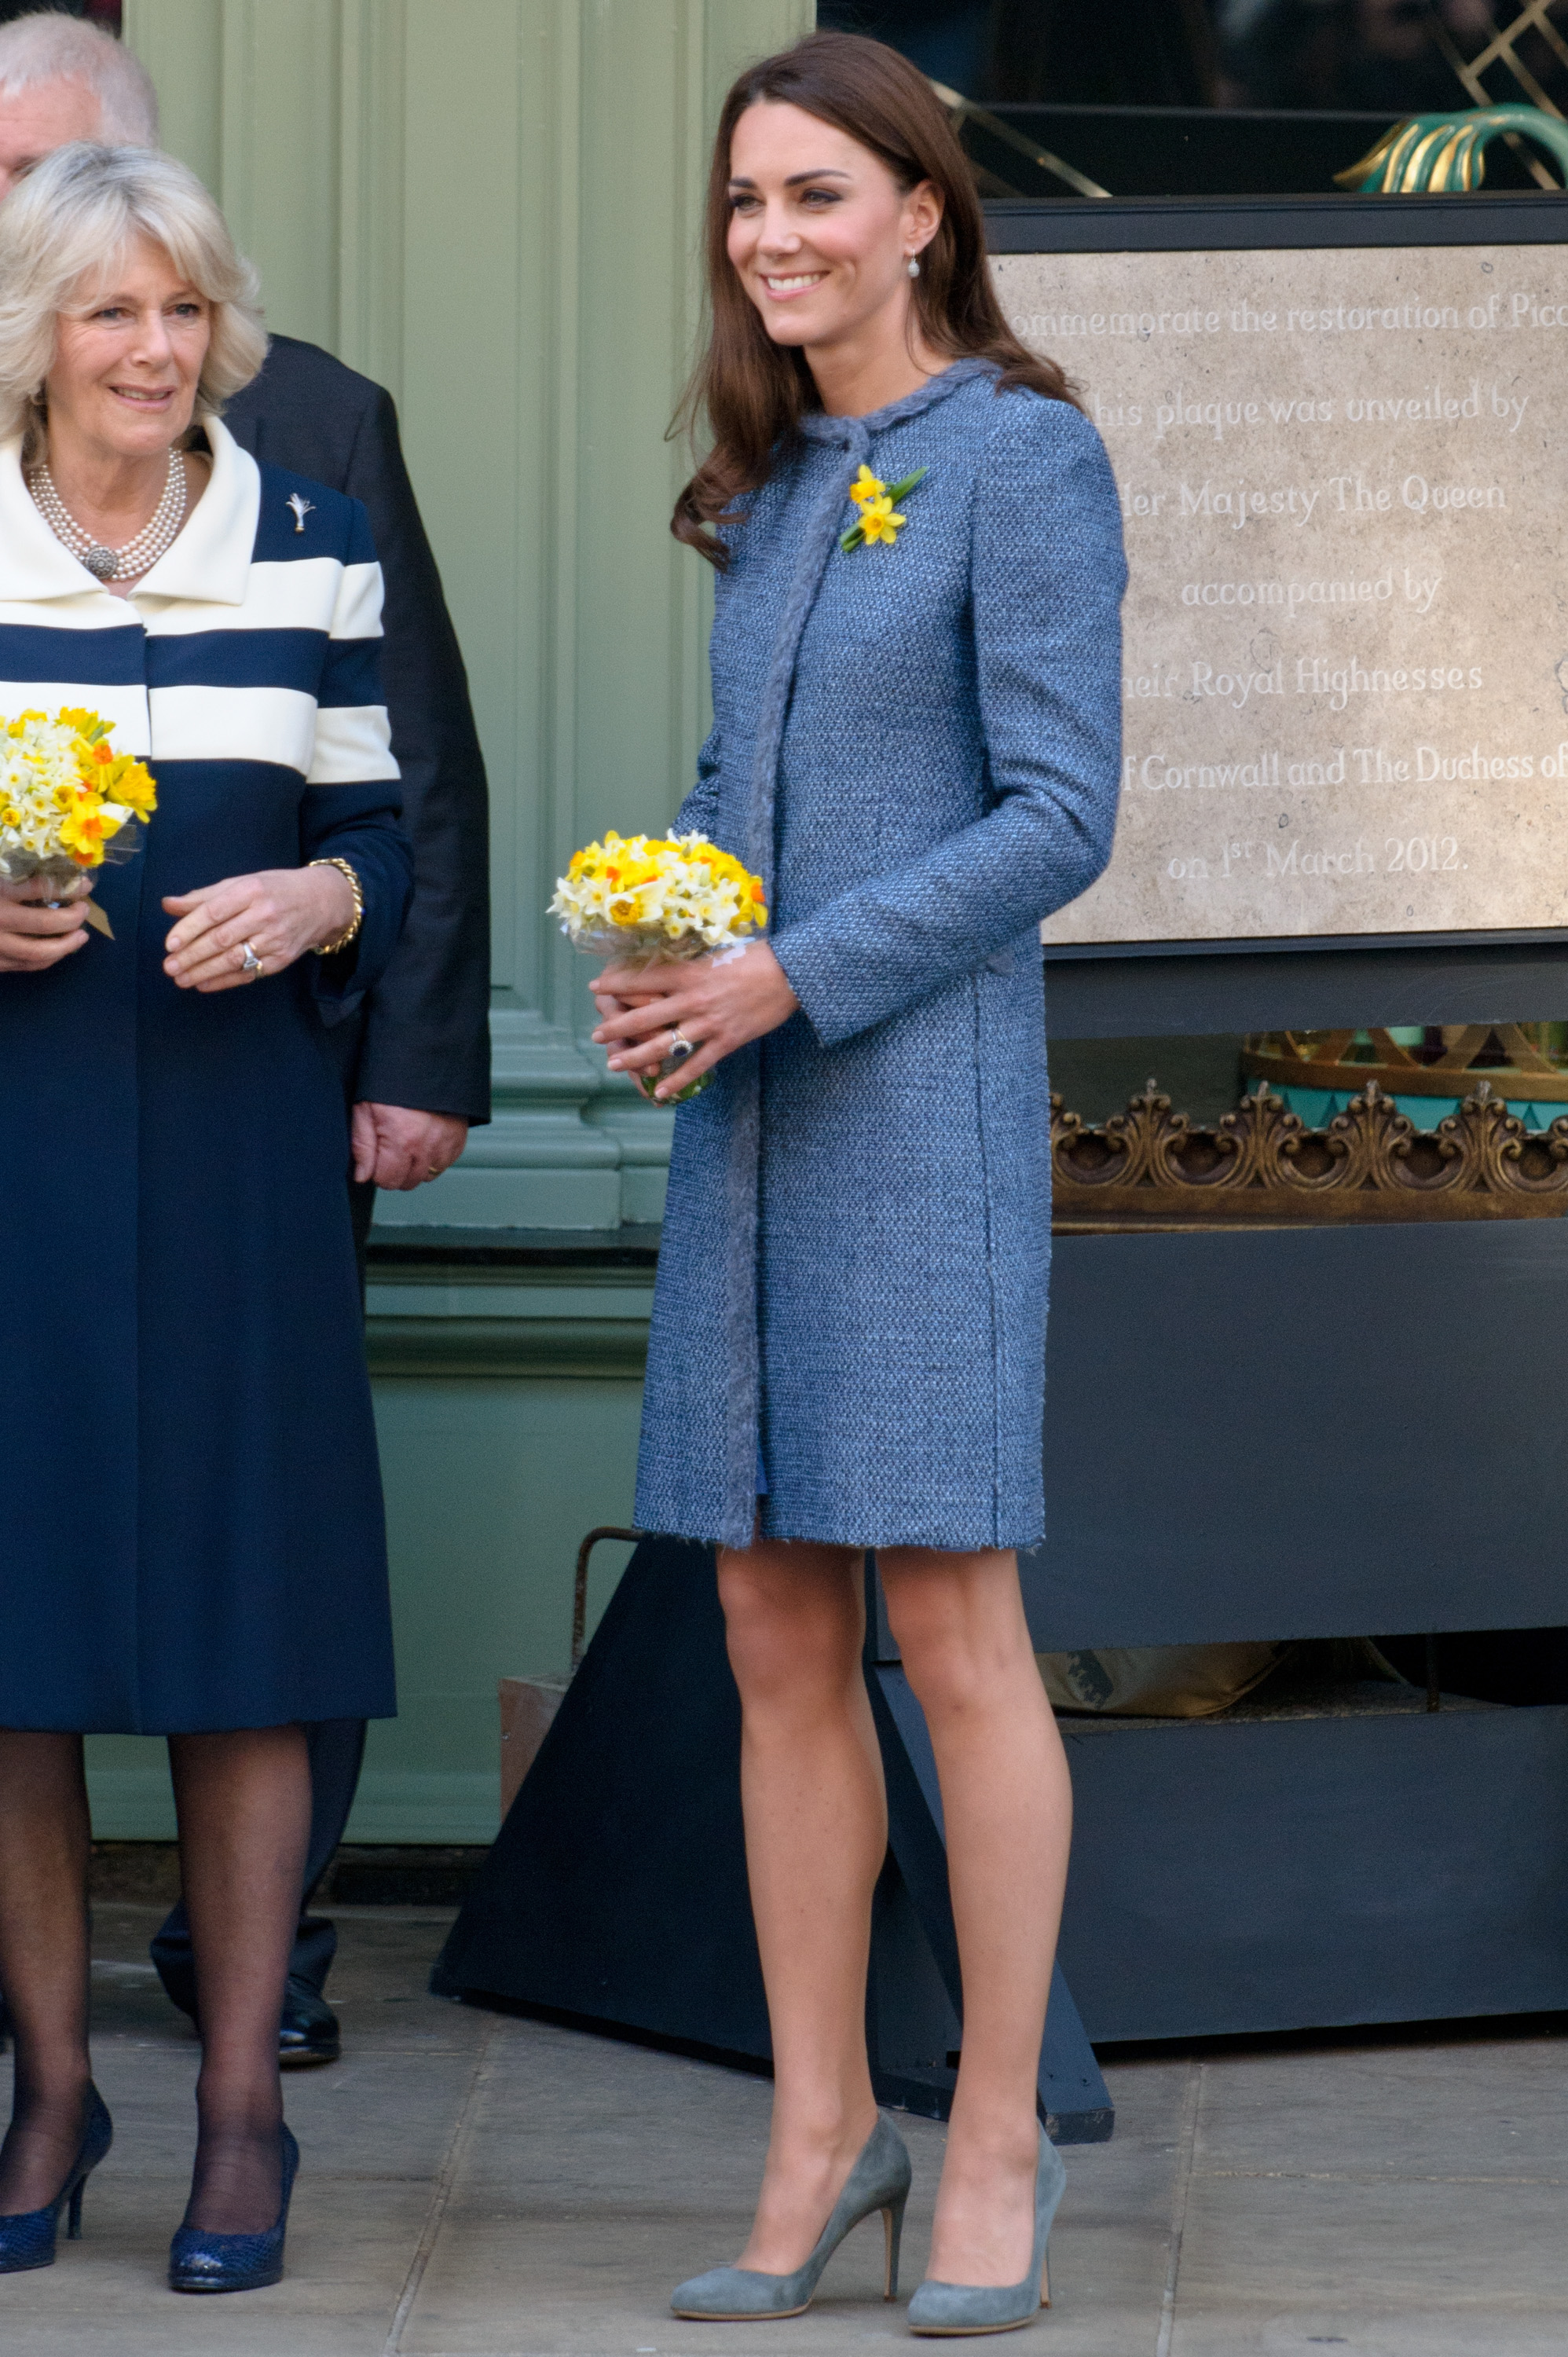 <strong>Three's a Crowd</strong>                                   In their first public appearance together without their husbands, Middleton, Camilla, the Duchess of Cornwall and Queen Elizabeth II visited Fortnum &amp; Mason store in London on March 1, 2012 as part of celebrations for the Queen's Diamond Jubilee. All three women wore blue, with Middleton choosing a cornflower Missoni coat.